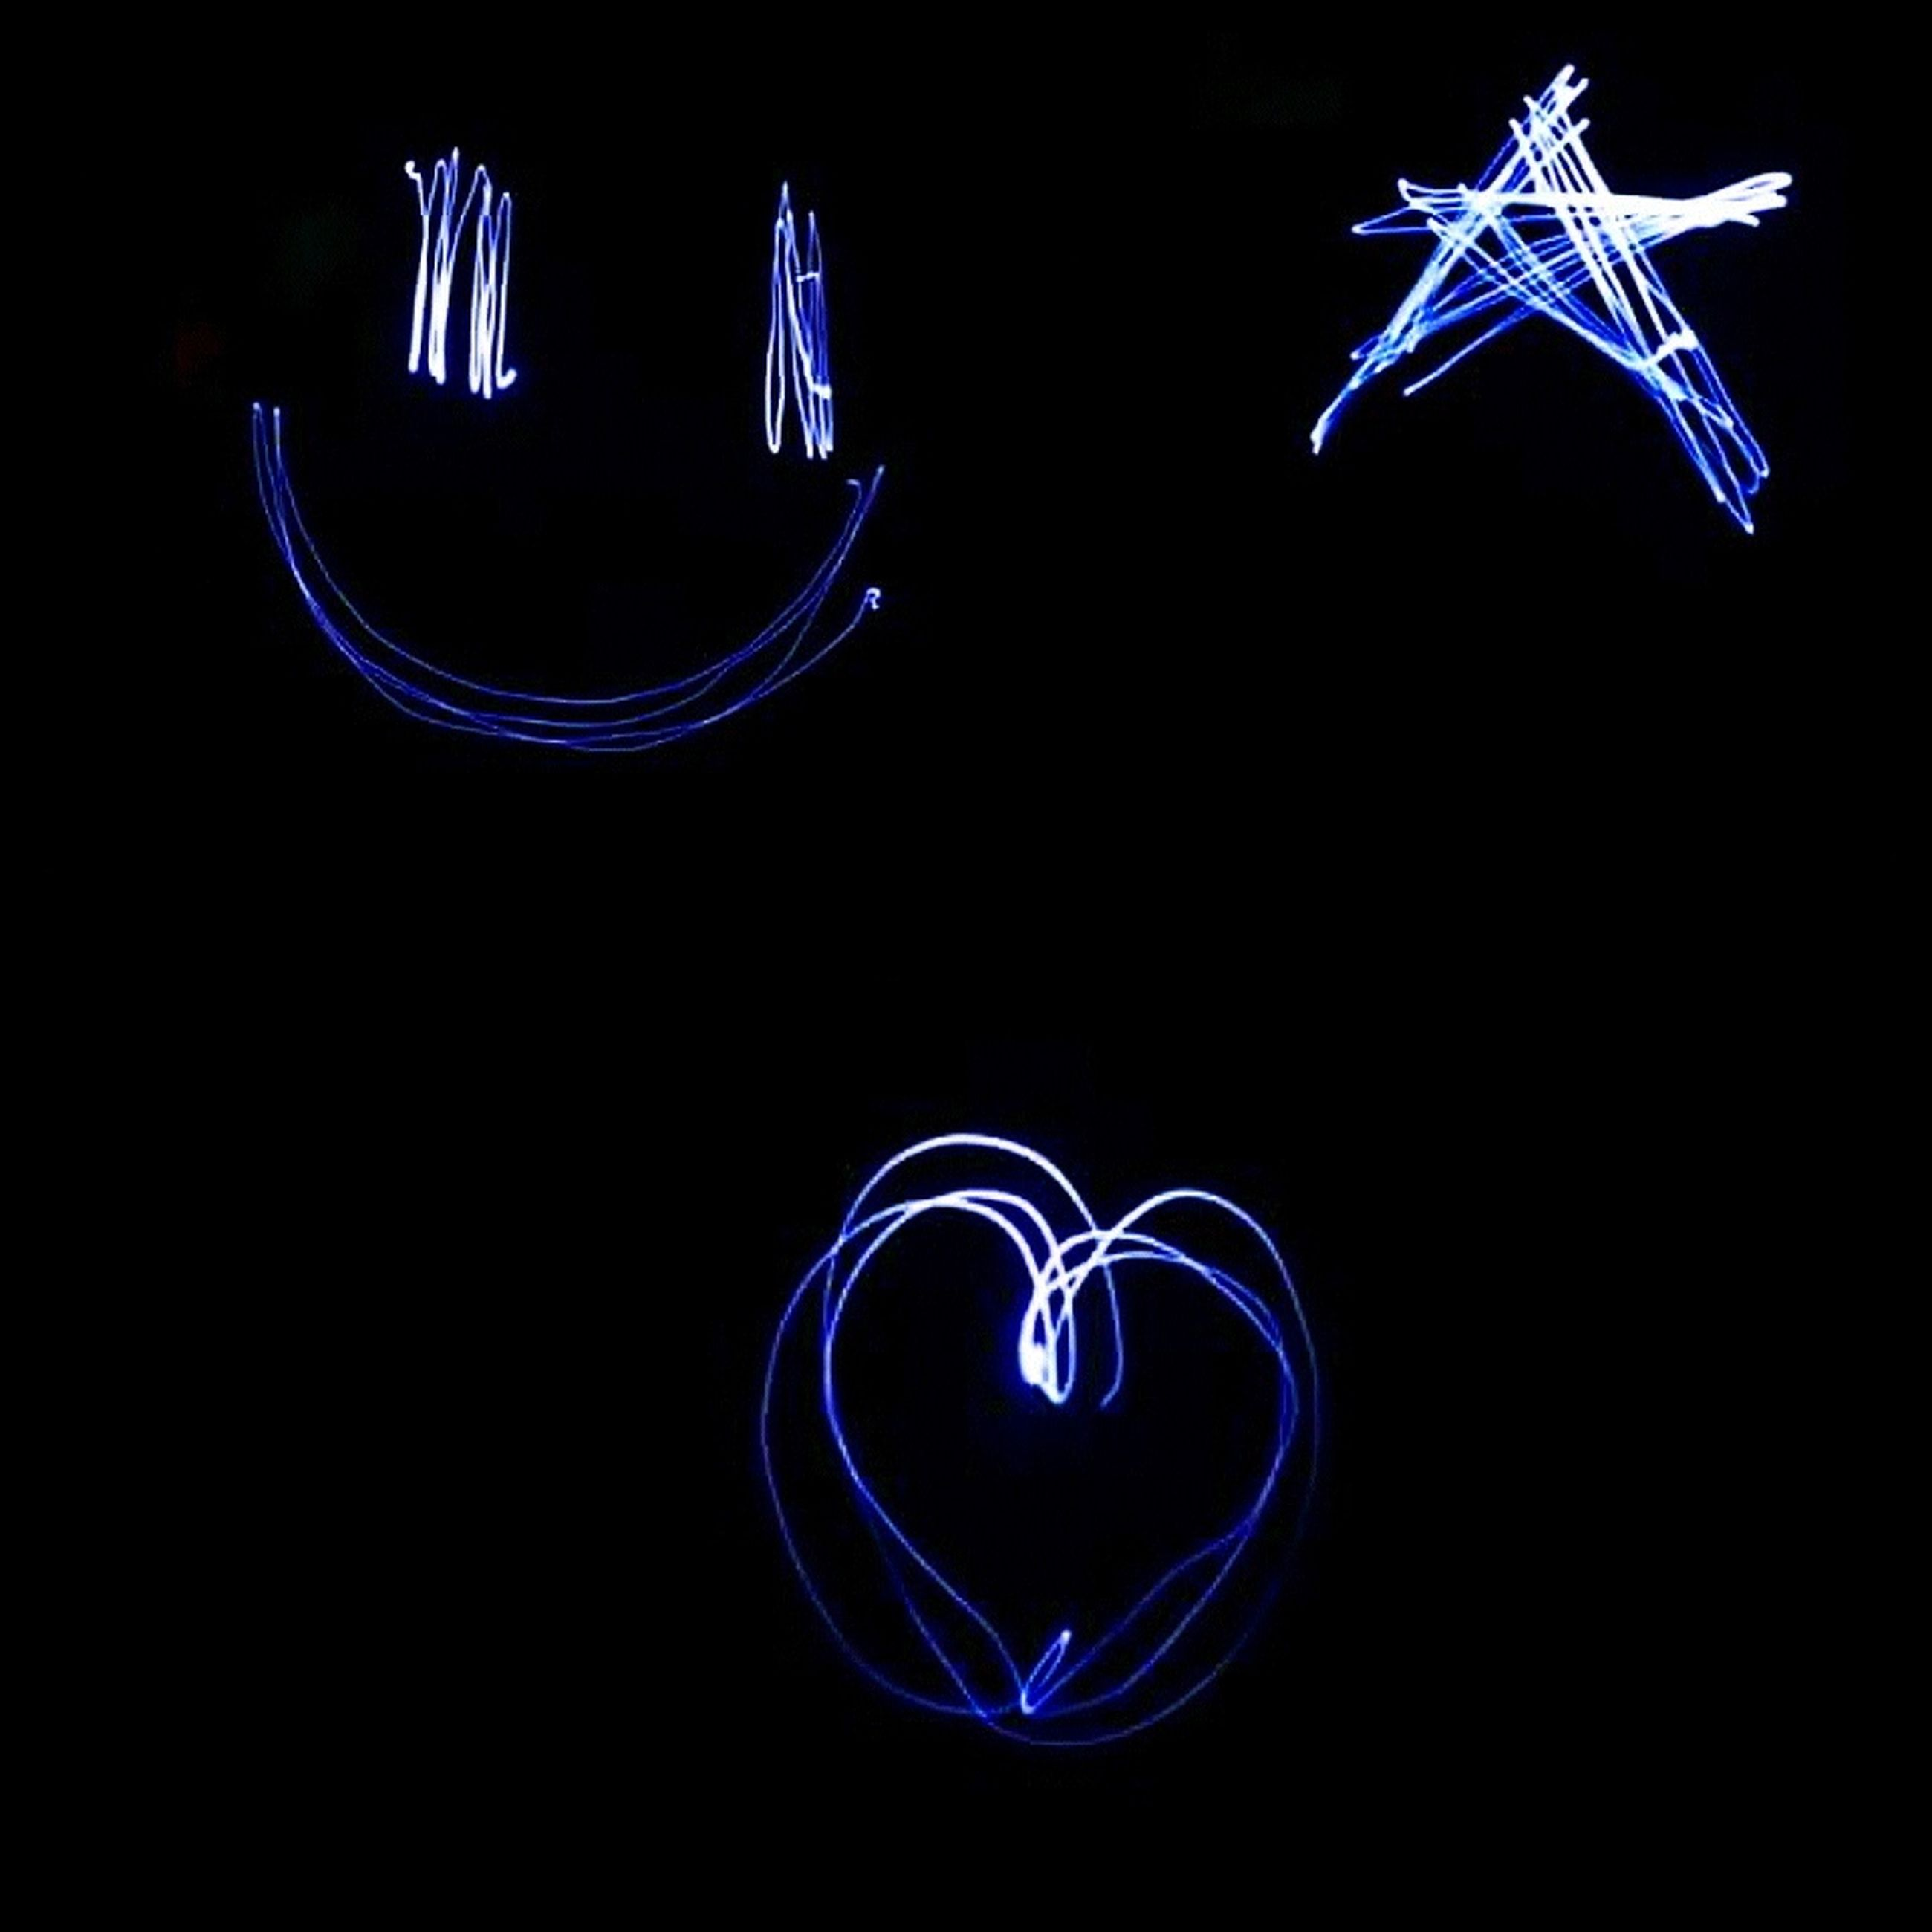 illuminated, night, studio shot, black background, glowing, long exposure, light painting, blue, copy space, motion, lighting equipment, abstract, light trail, pattern, creativity, low angle view, art, light - natural phenomenon, multi colored, art and craft